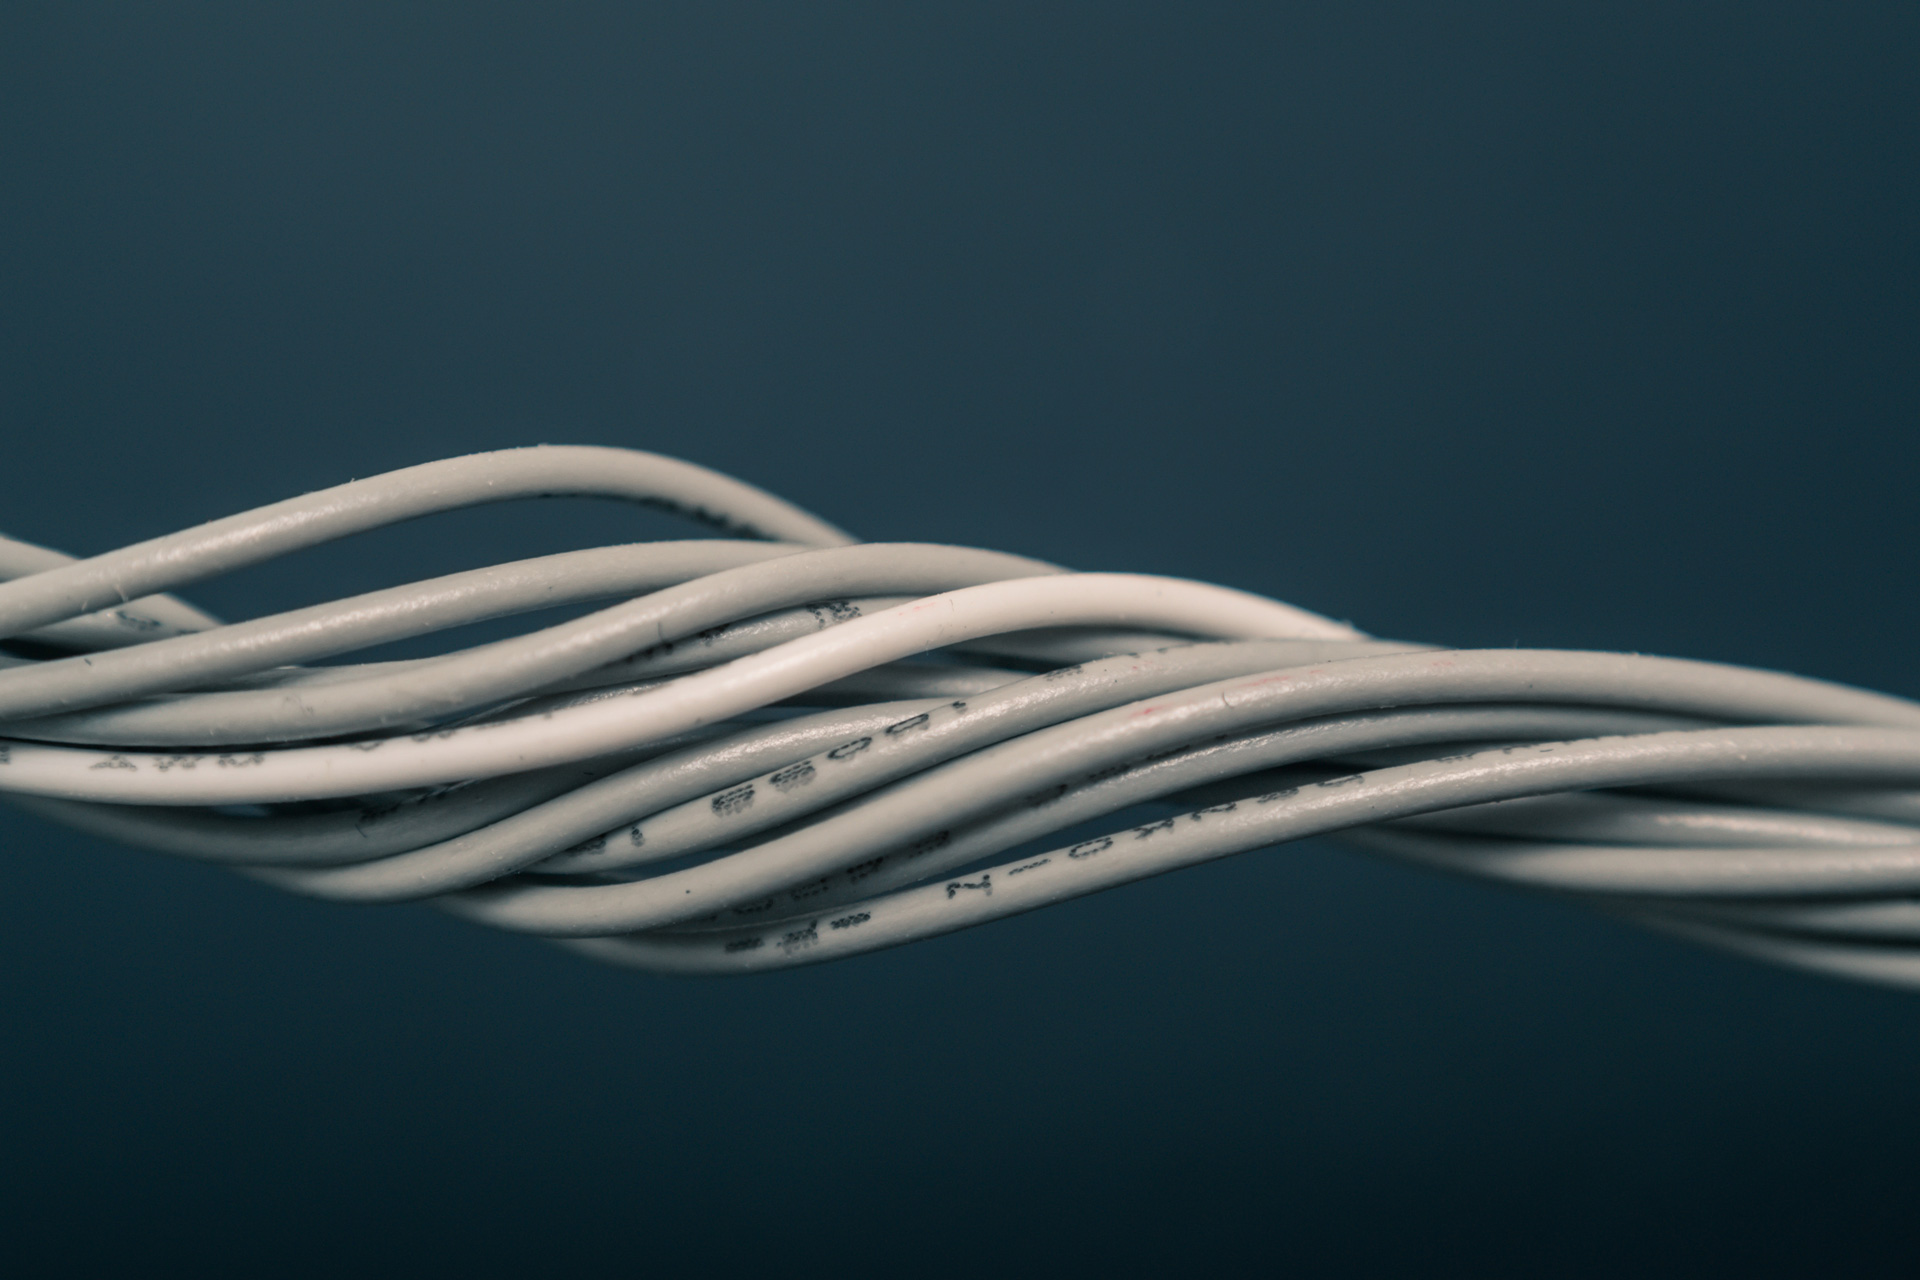 Winding cables